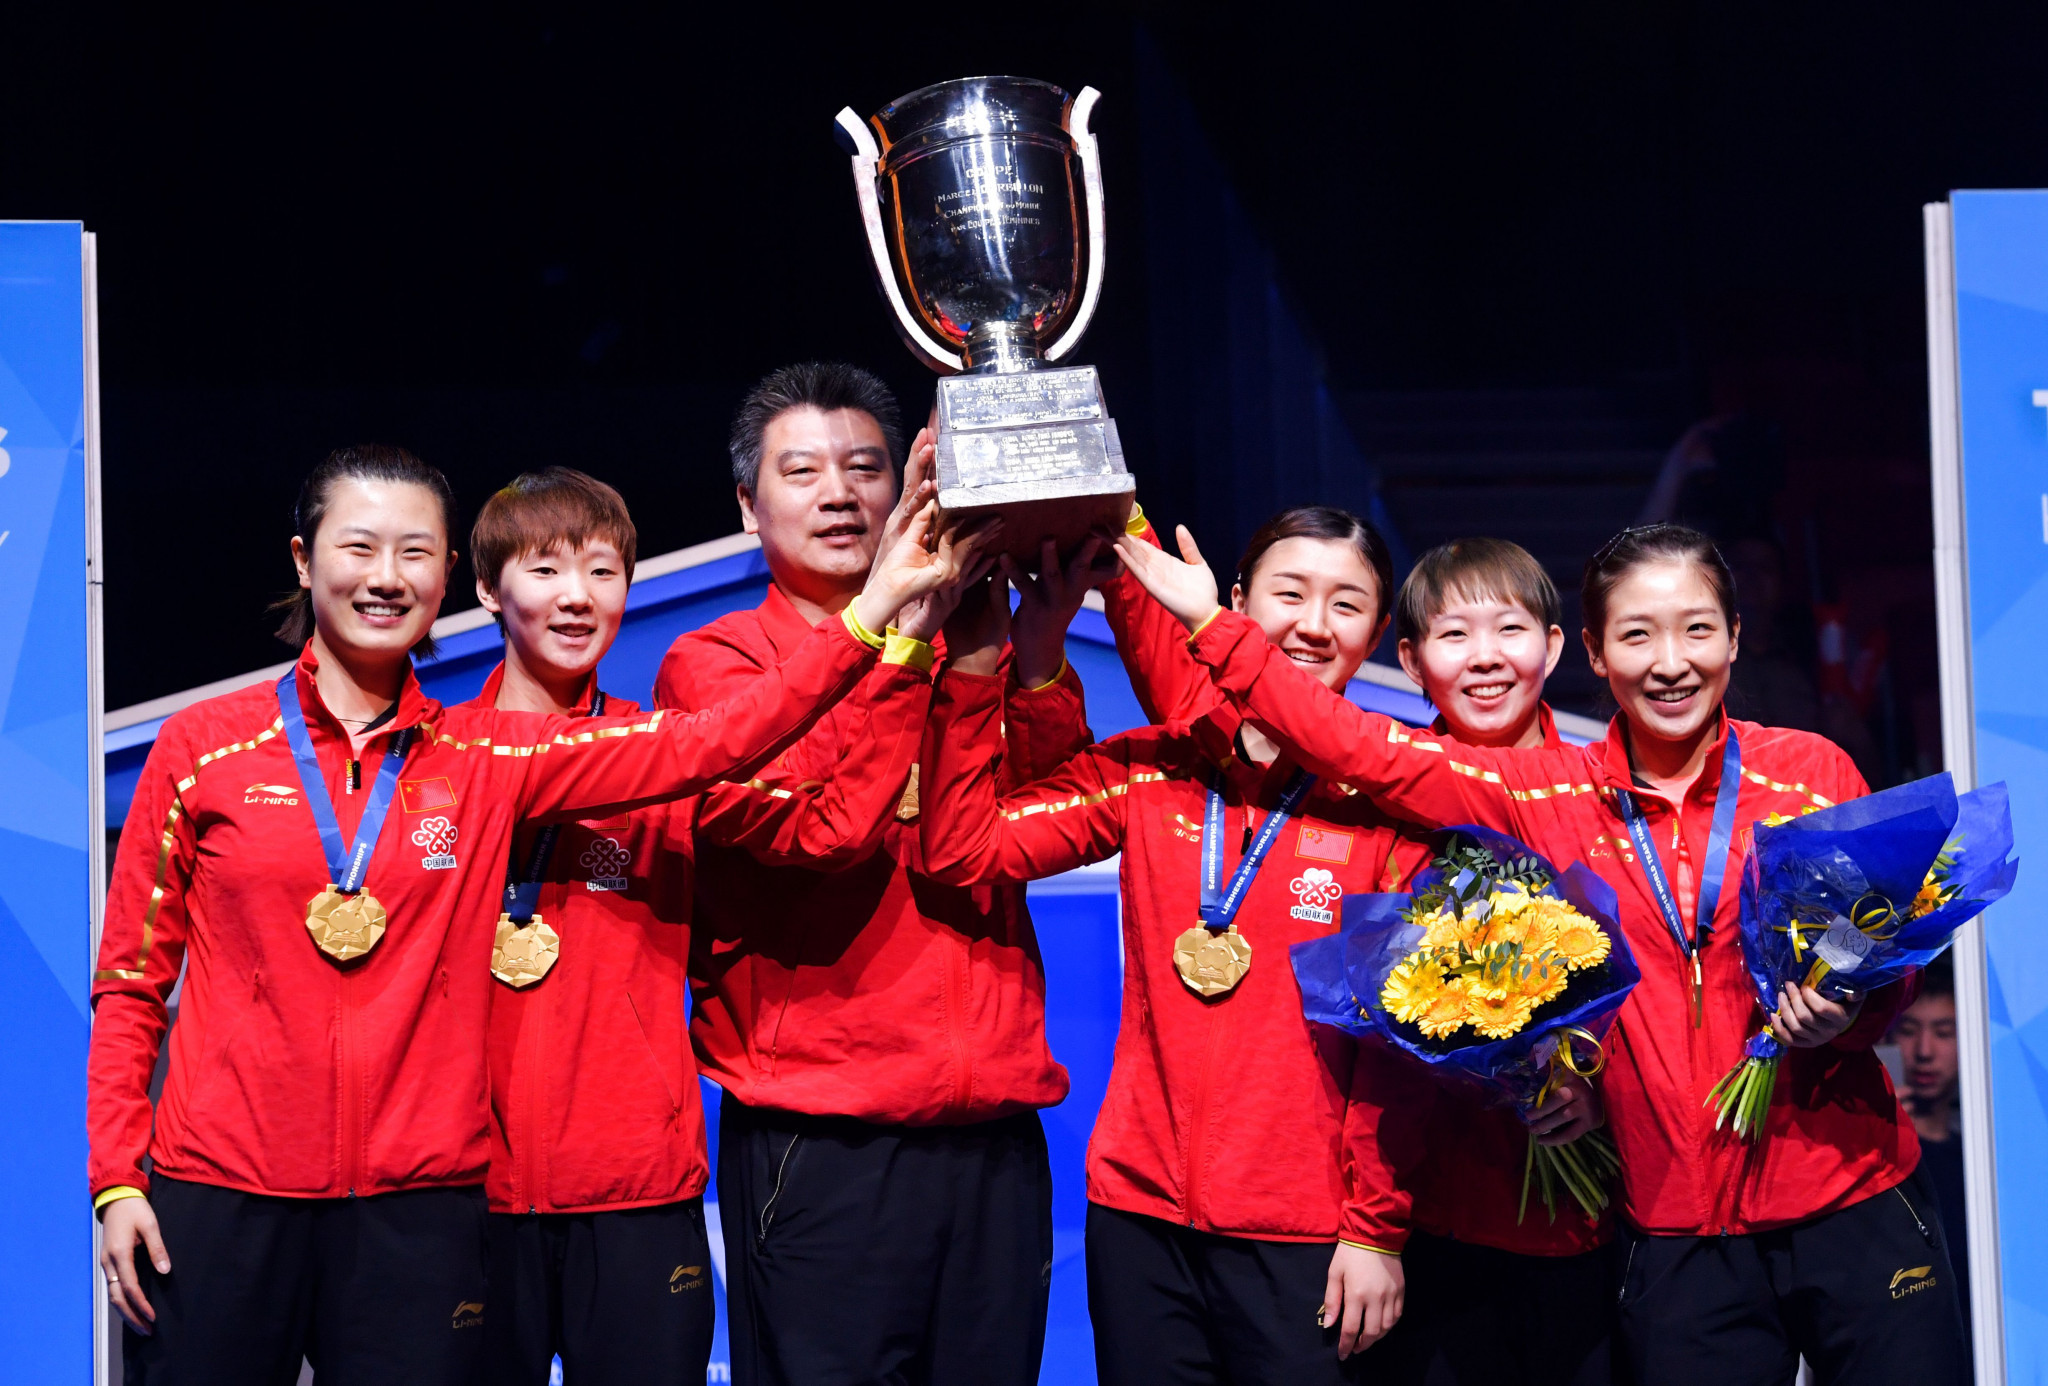 Chinese women come from behind to win ITTF World Team Championships title